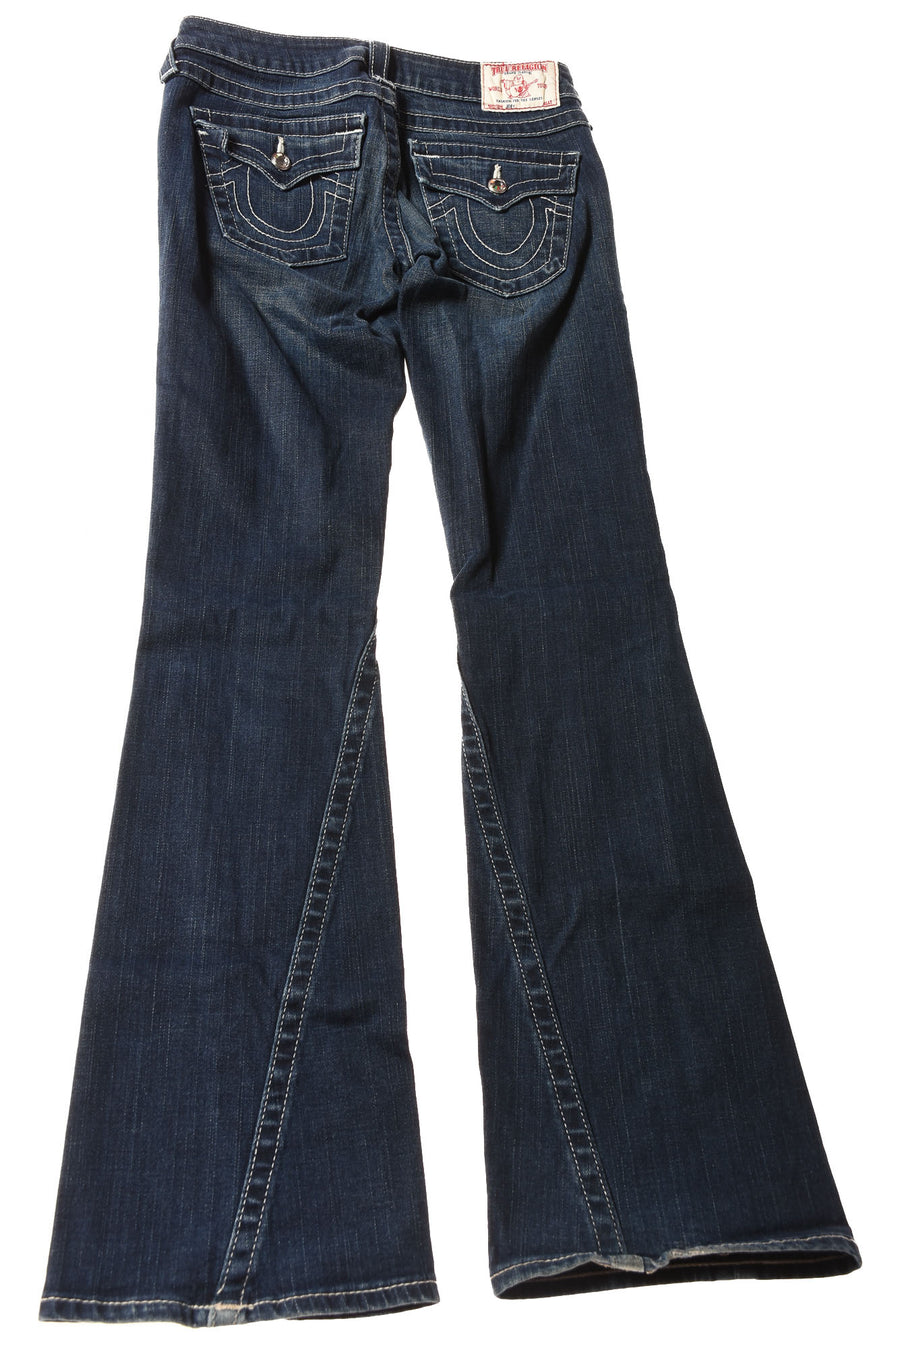 Women's Jeans By True Religion